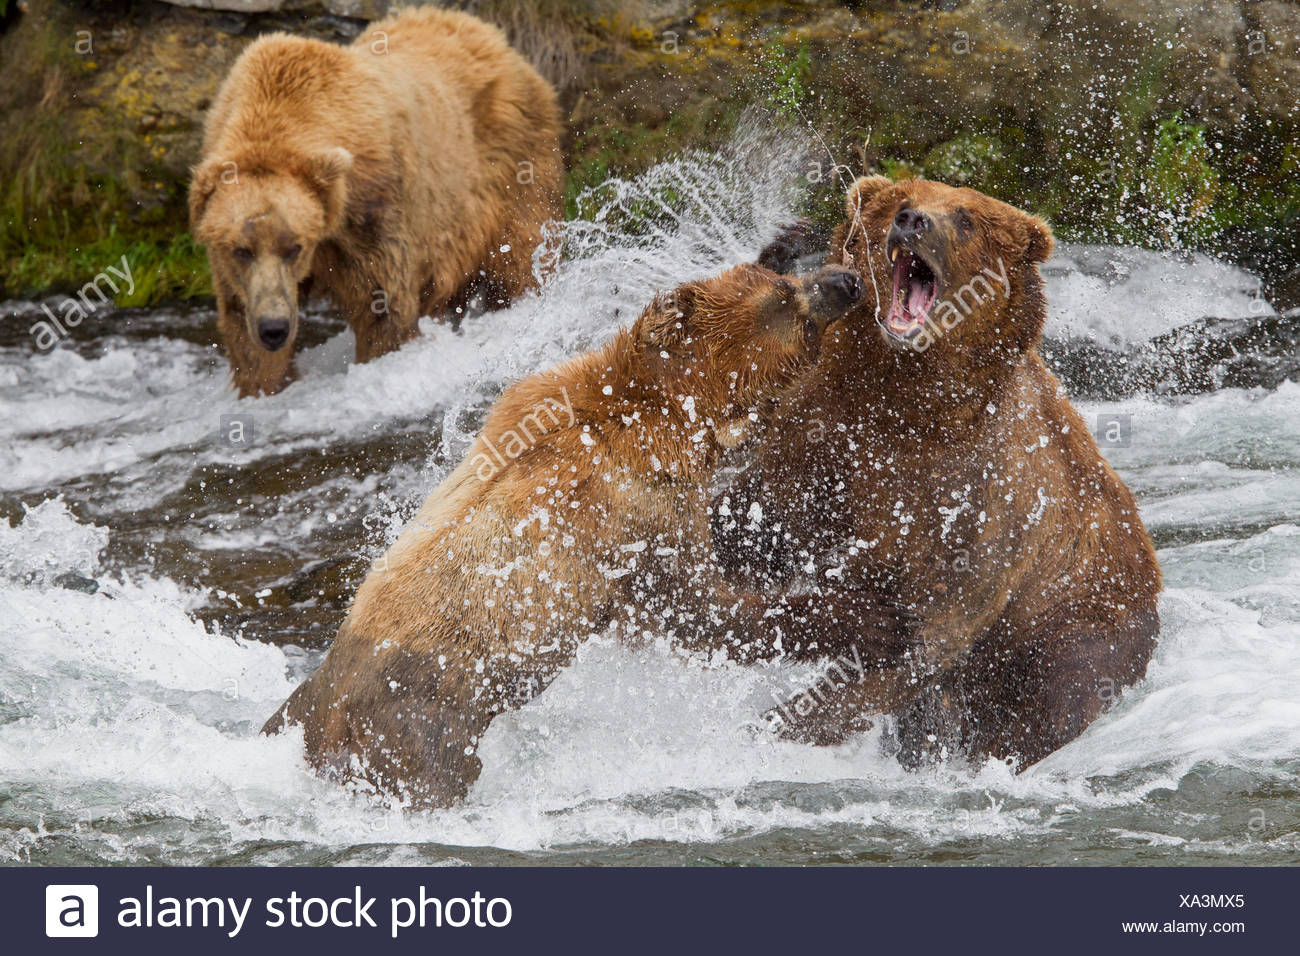 Two Brown Bear males fight while a third male watches, near Brooks Falls, Brooks Camp, Katmai National Park, Alaska - Stock Image